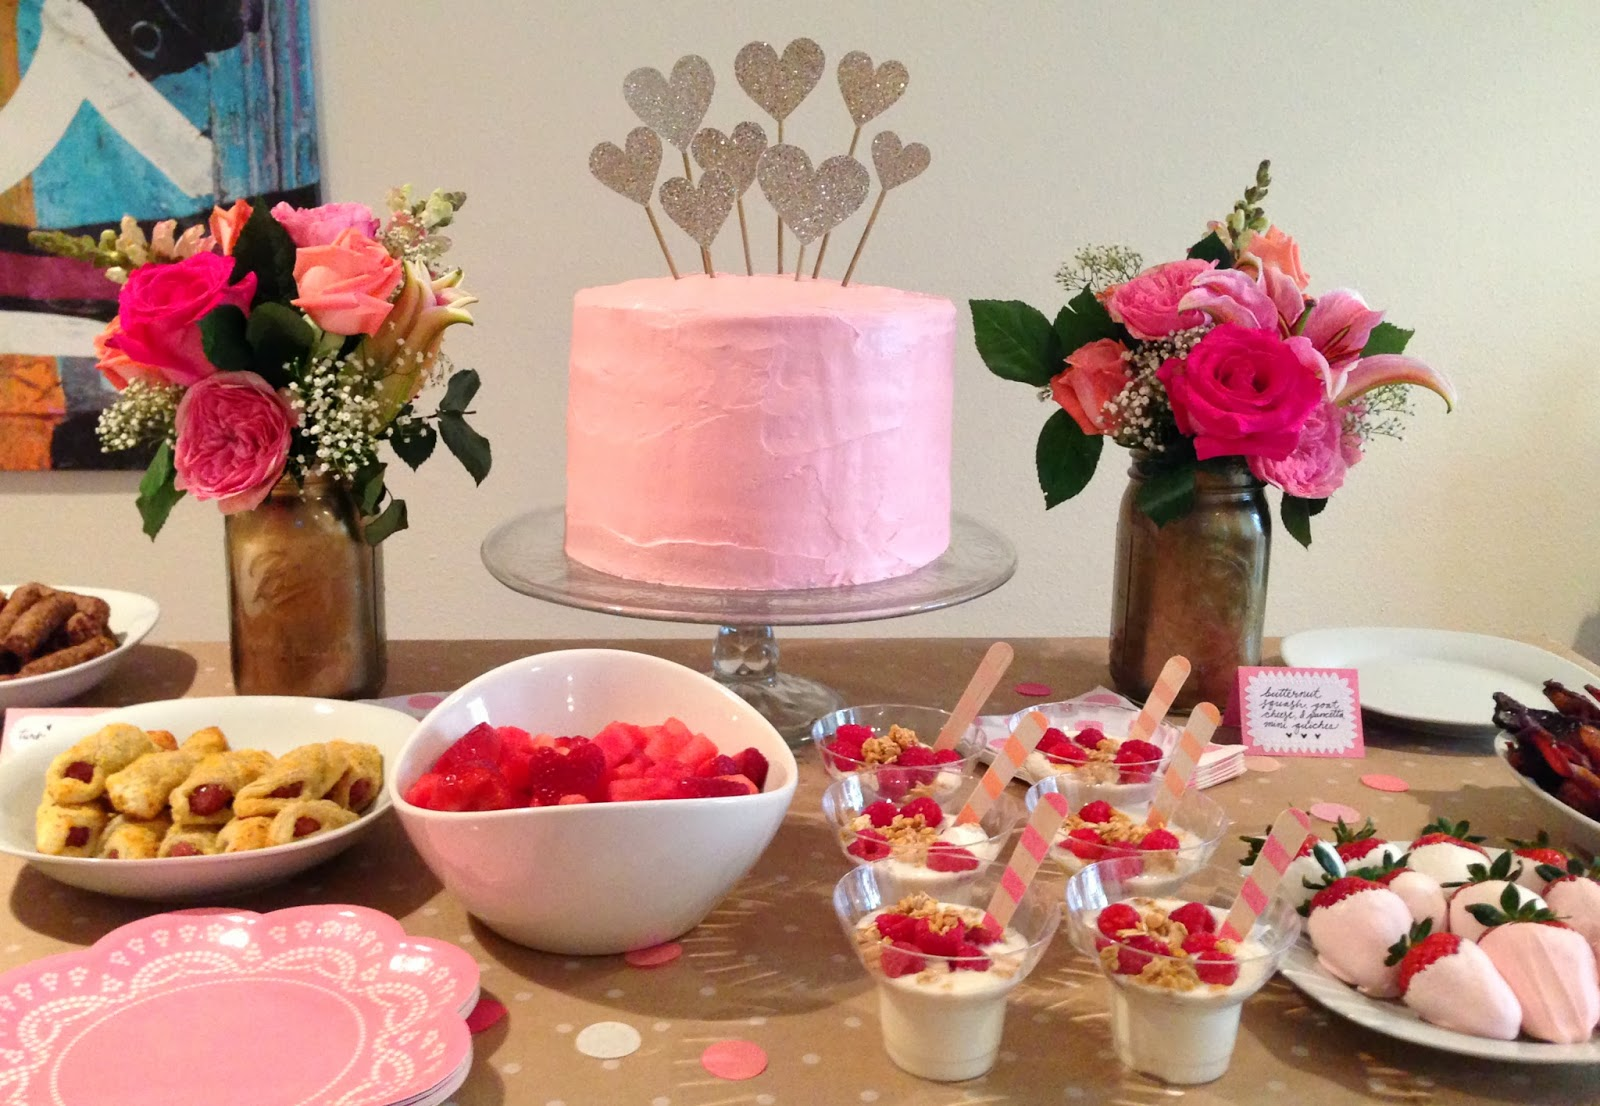 Yesterday, I Hosted A Valentineu0027s Brunch For Ten Or So Friends That Was So  Jam Packed With Girly Goodness That I Had To Share It Here, Despite Only  Snapping ...